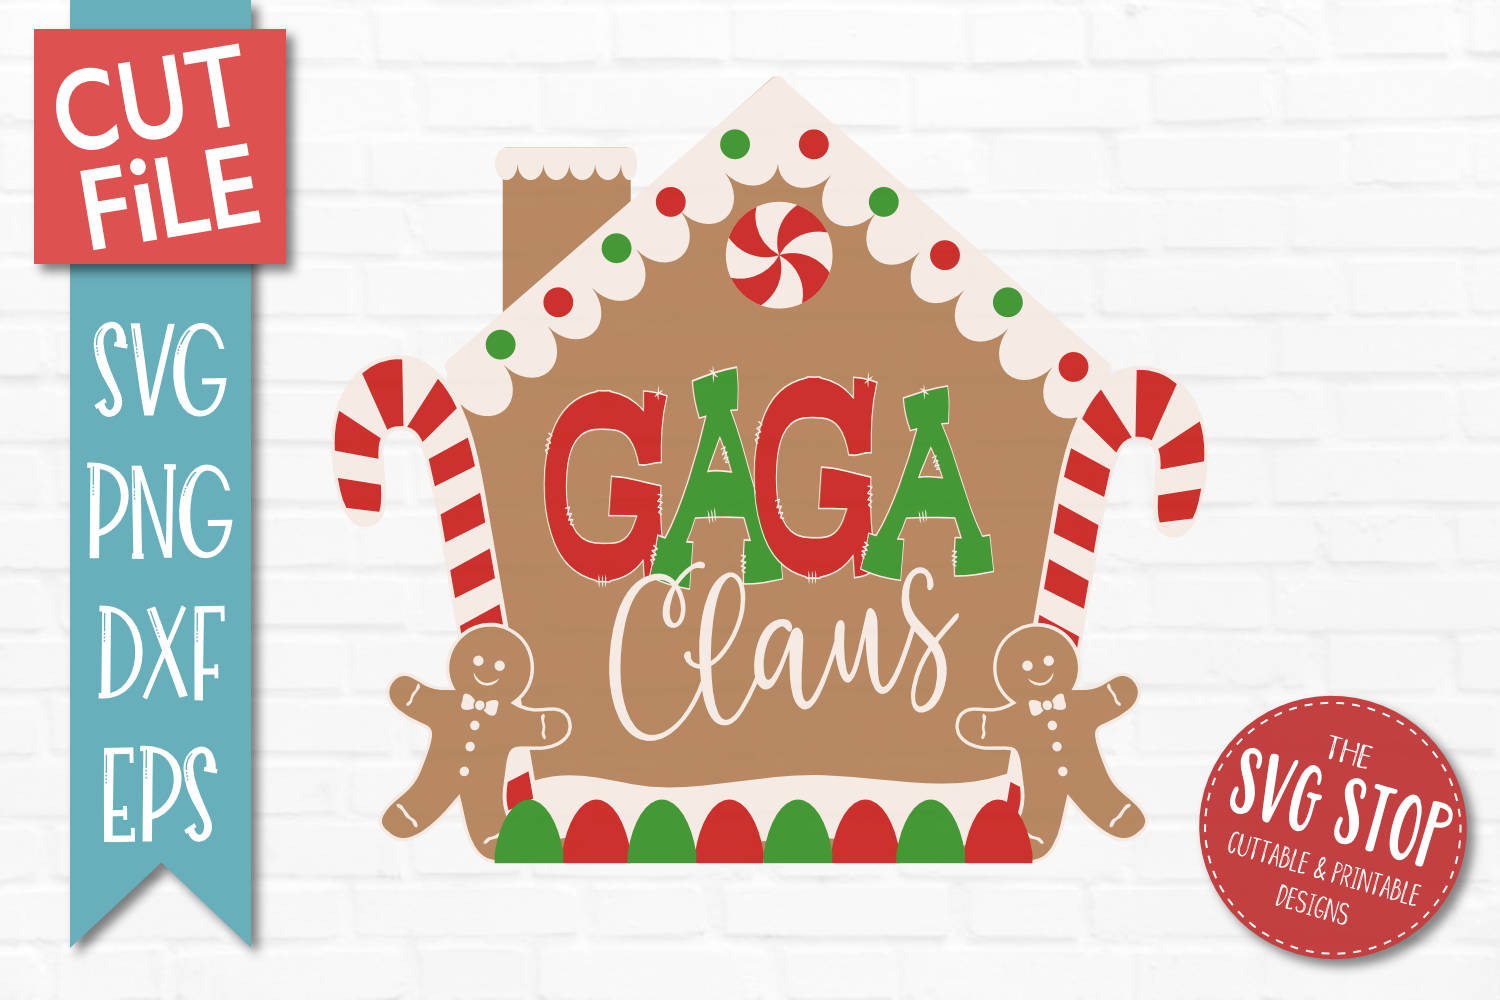 Gaga Claus Gingerbread Christmas SVG, PNG, DXF, EPS example image 1